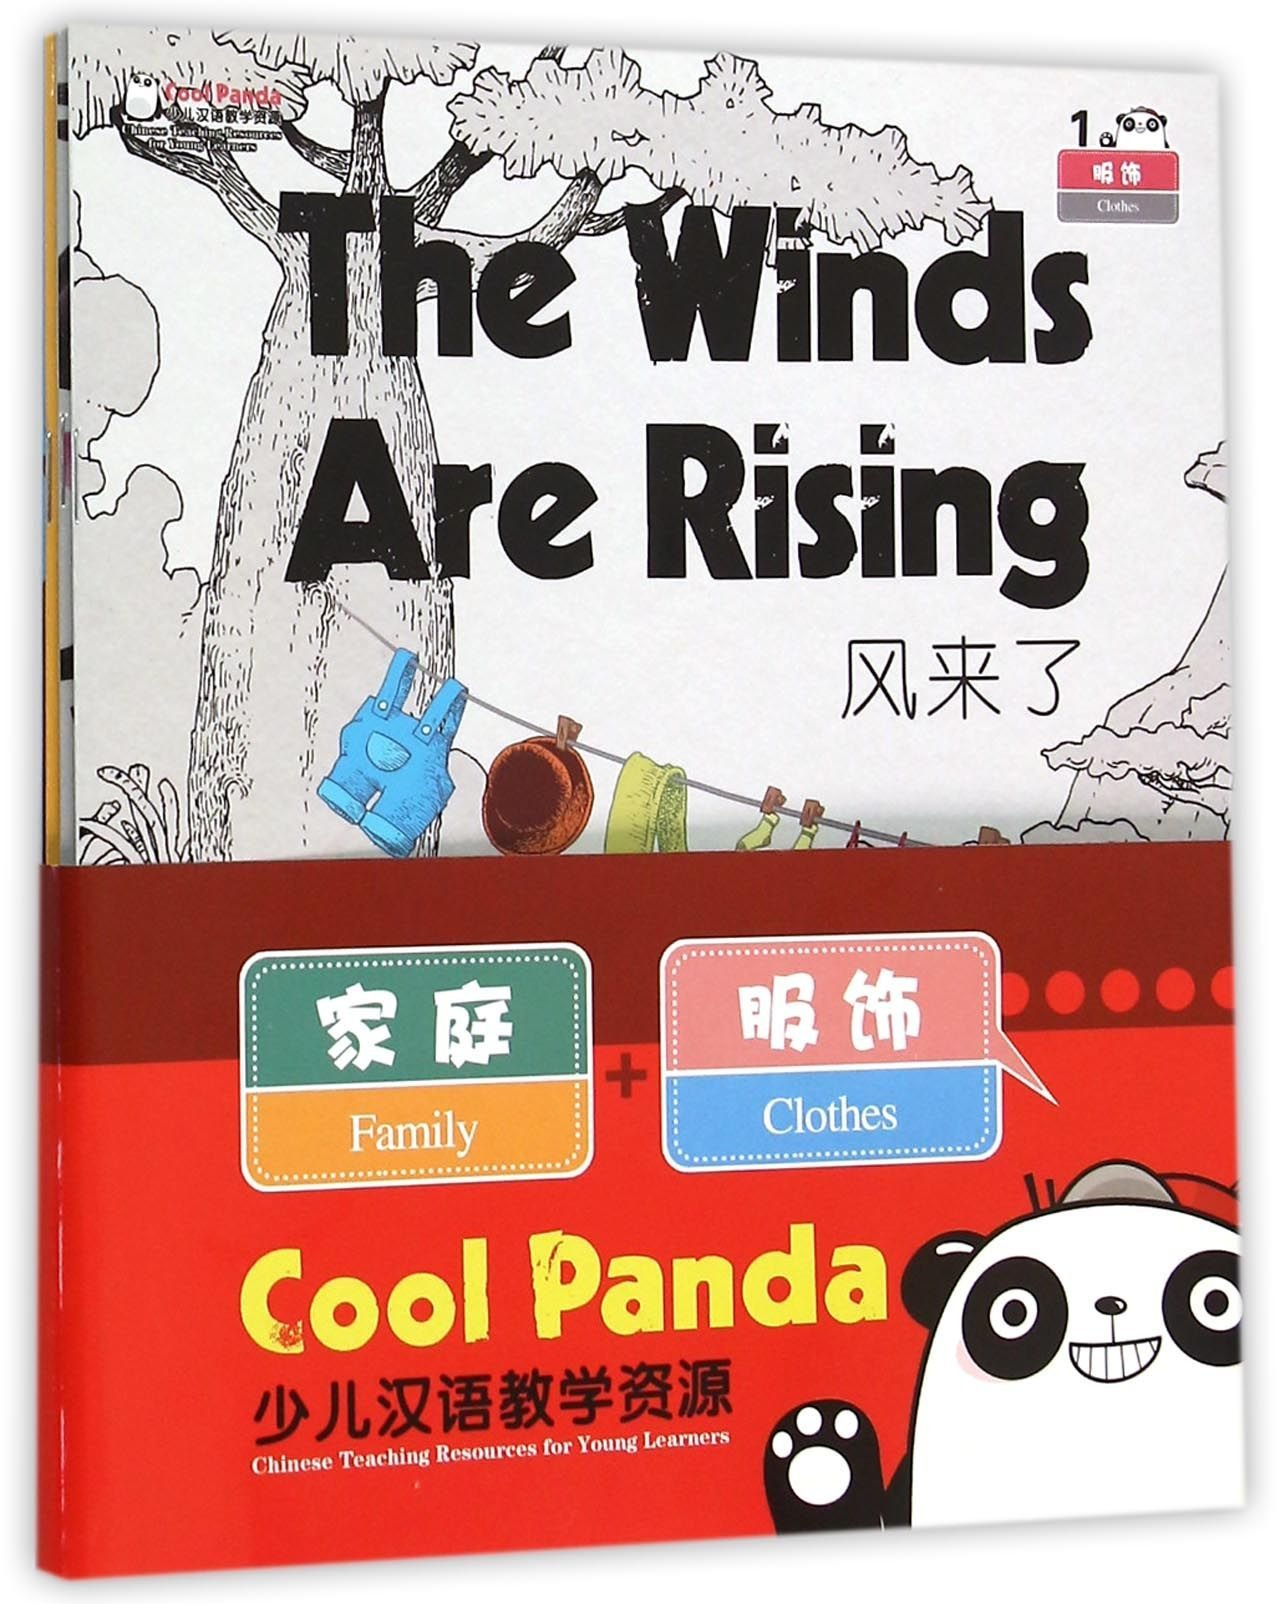 Download Family and Clothes - Cool Panda Chinese Language Teaching Resources for Young Learners Level 1 (English and Chinese Edition) PDF